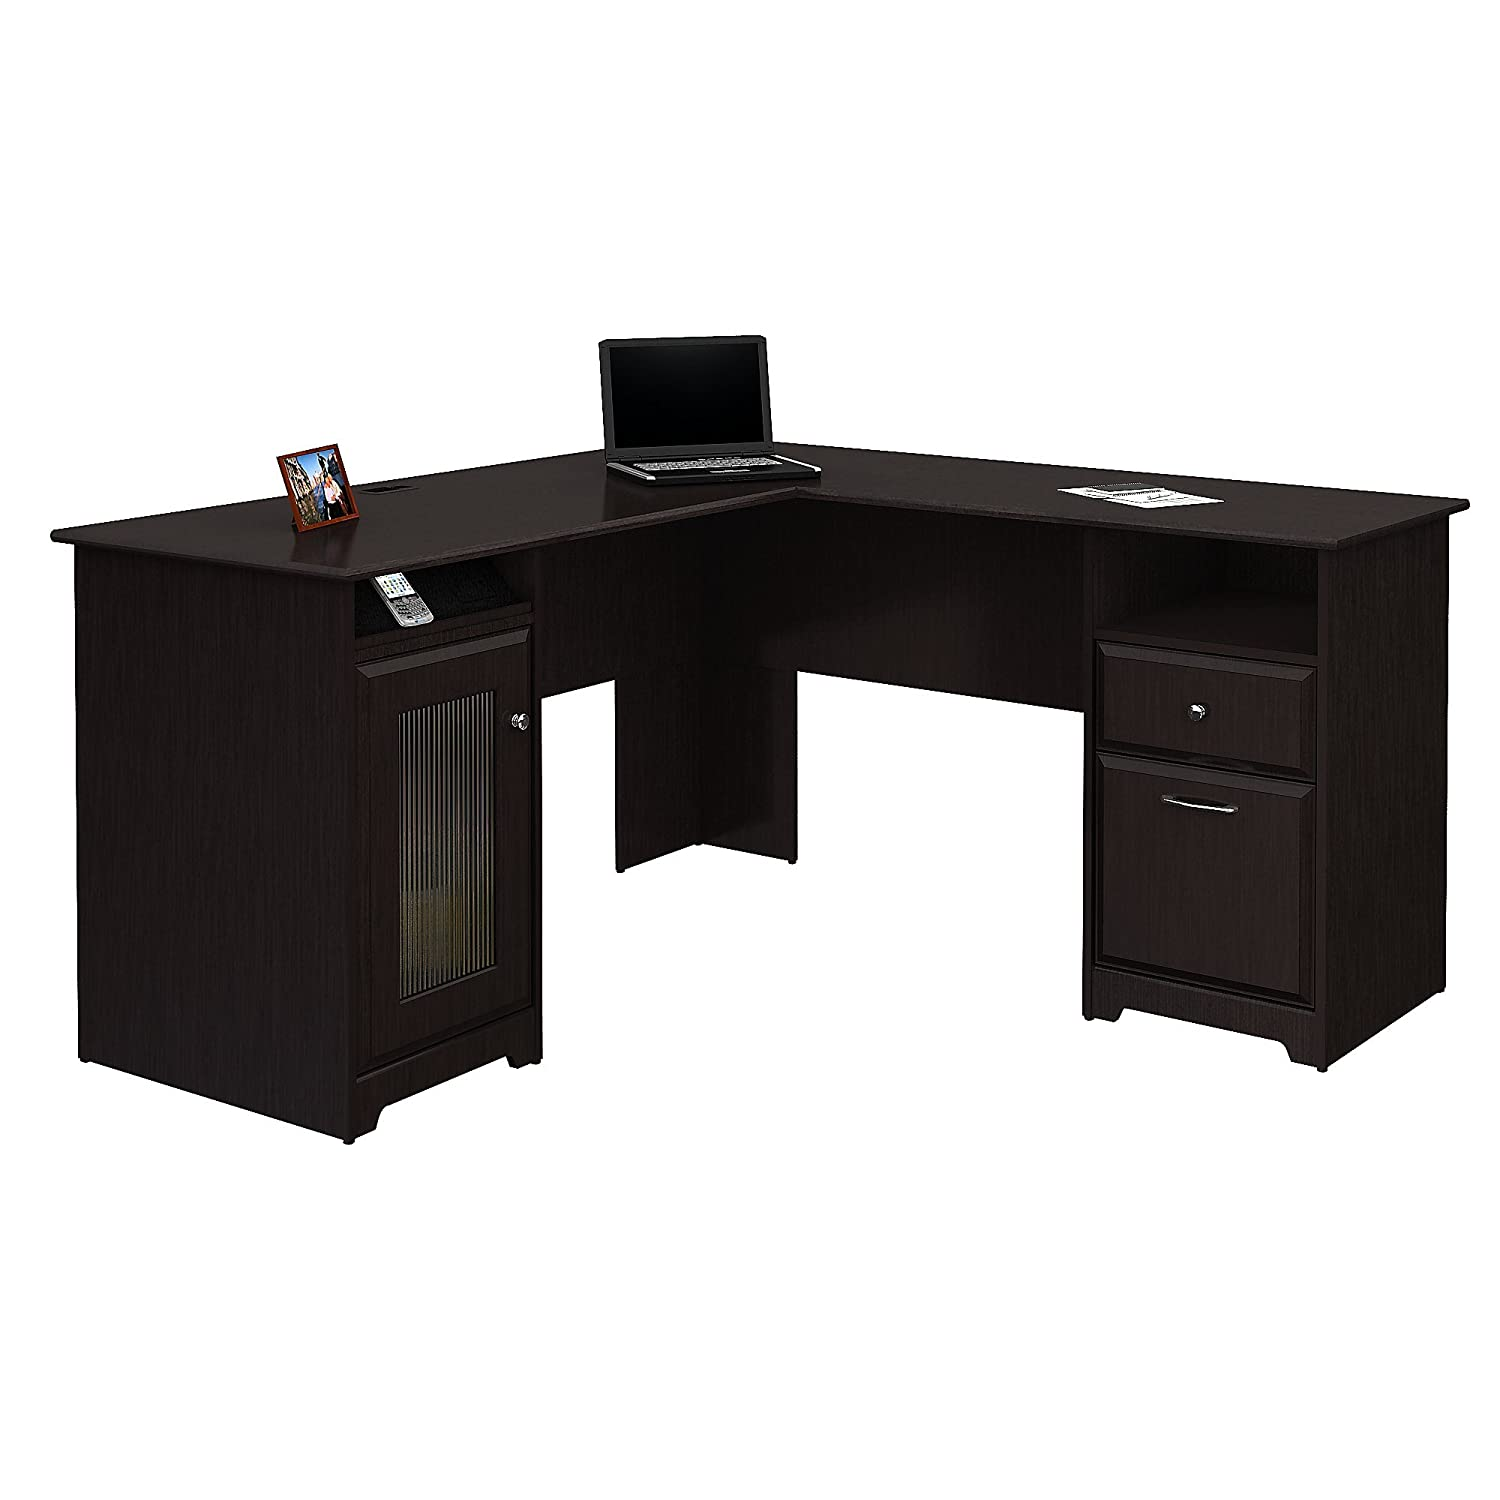 drawers and office drawer with printer design computer furniture black steel storage desk painted wheels leg ideas home